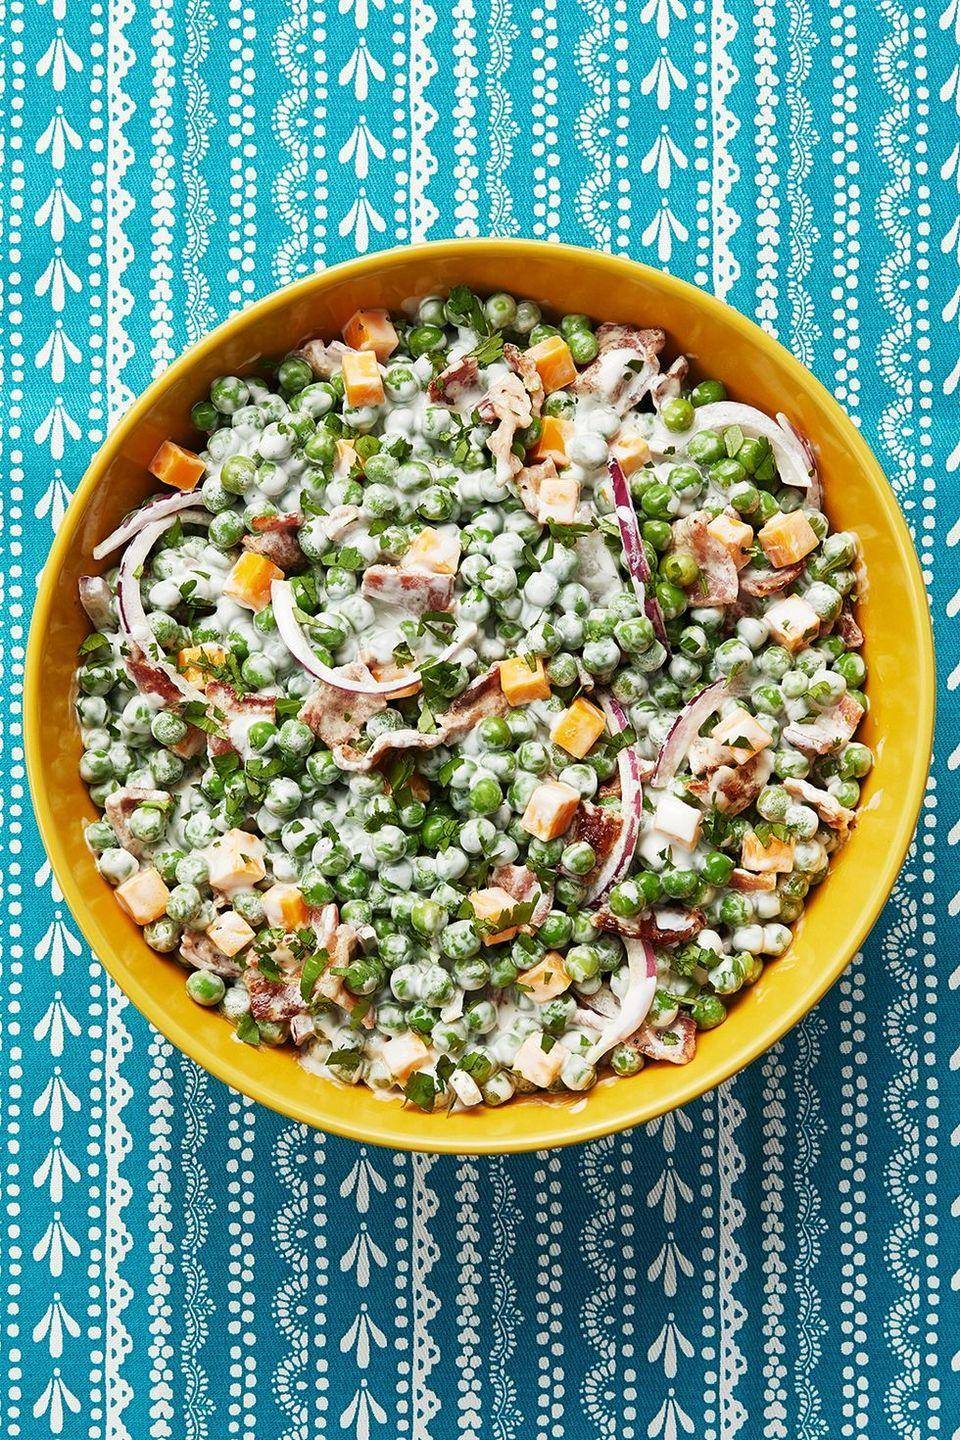 """<p>Here's a bright and colorful way to get some veggies onto the dinner table. A little bacon in the mix never hurts, either!<br></p><p><a href=""""https://www.thepioneerwoman.com/food-cooking/recipes/a12025/pea-salad/"""" rel=""""nofollow noopener"""" target=""""_blank"""" data-ylk=""""slk:Get the recipe."""" class=""""link rapid-noclick-resp""""><strong>Get the recipe.</strong></a></p><p><a class=""""link rapid-noclick-resp"""" href=""""https://go.redirectingat.com?id=74968X1596630&url=https%3A%2F%2Fwww.walmart.com%2Fsearch%2F%3Fquery%3Dpioneer%2Bwoman%2Bserving%2Bspoons&sref=https%3A%2F%2Fwww.thepioneerwoman.com%2Ffood-cooking%2Fmeals-menus%2Fg35514088%2Fbest-side-dishes-for-ham%2F"""" rel=""""nofollow noopener"""" target=""""_blank"""" data-ylk=""""slk:SHOP SERVING SPOONS"""">SHOP SERVING SPOONS</a></p>"""